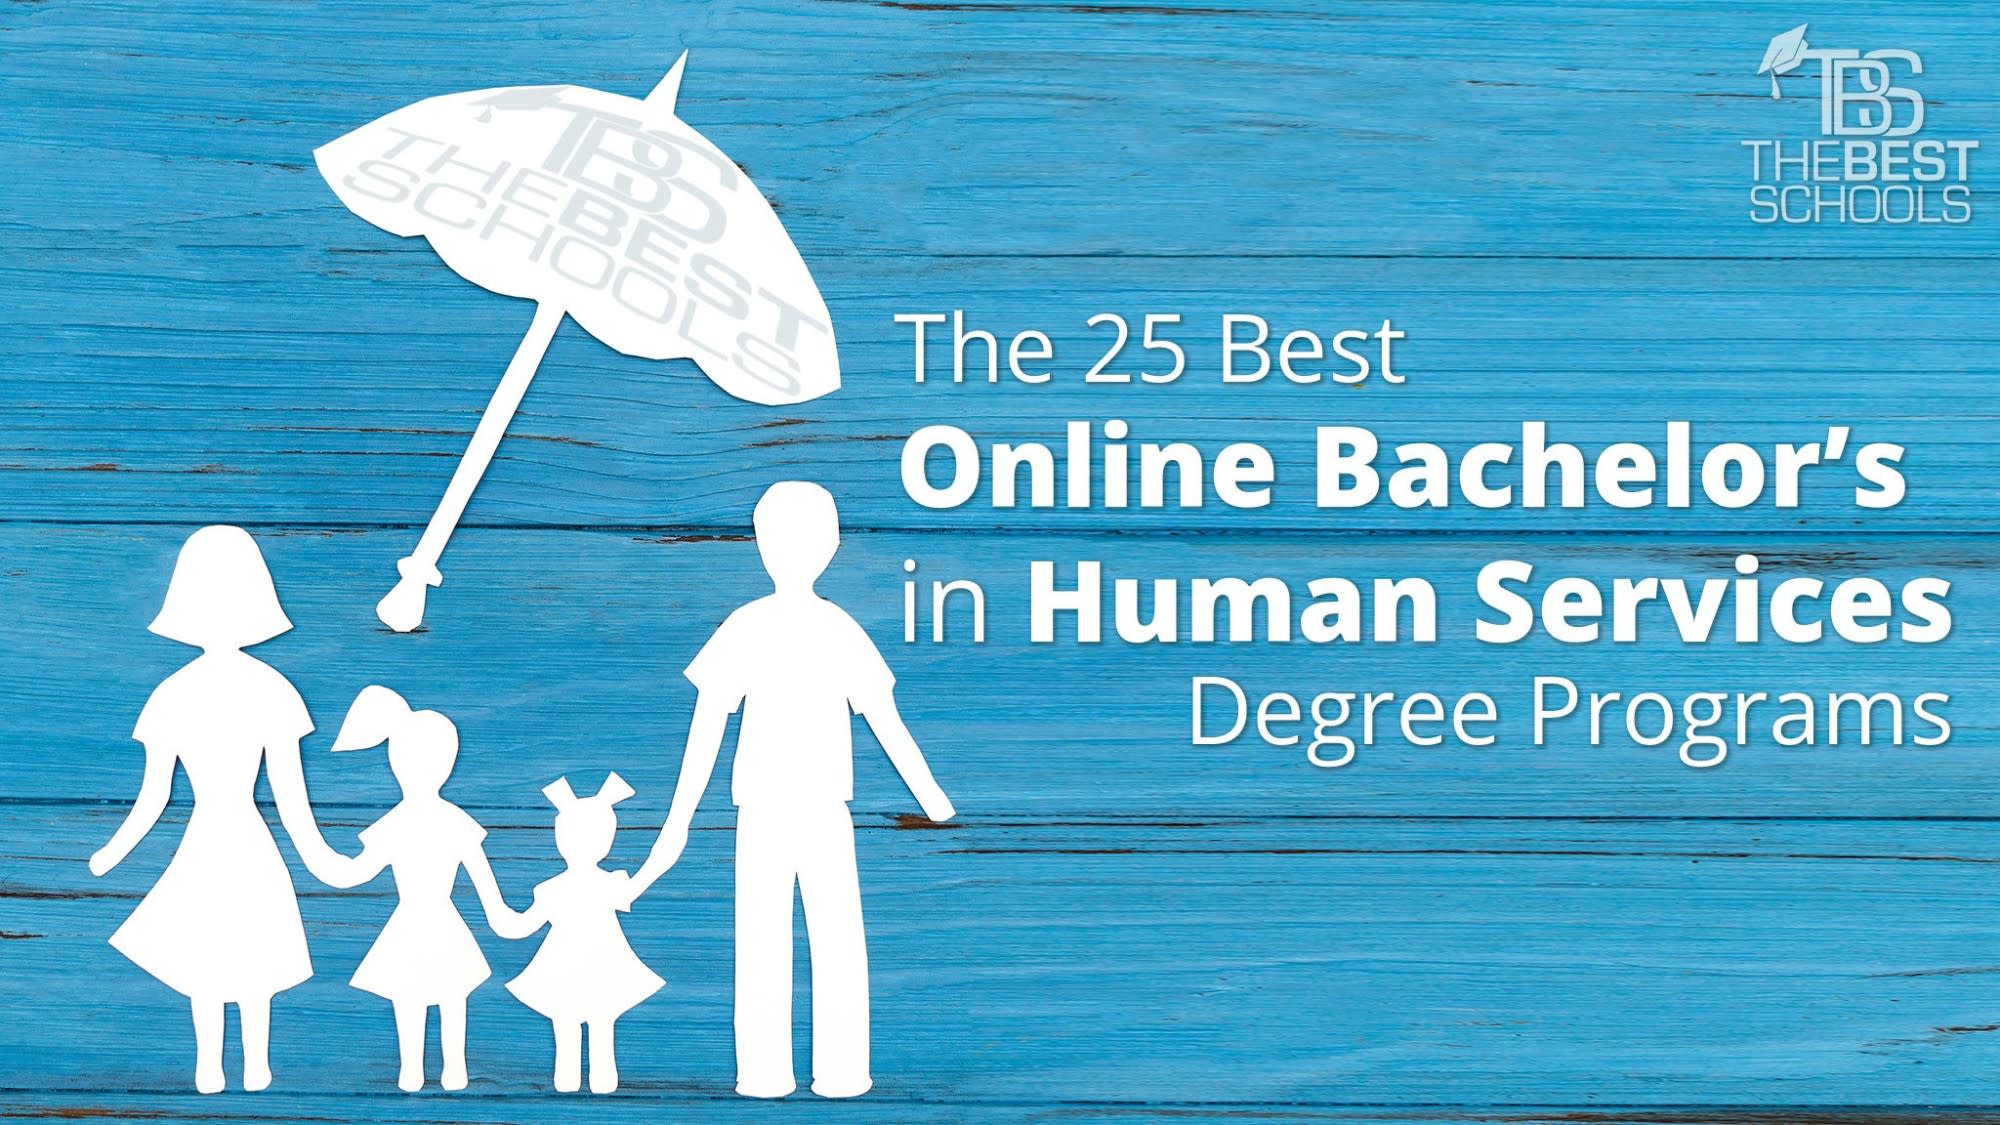 The 25 Best Online Bachelor's in Human Services Degree